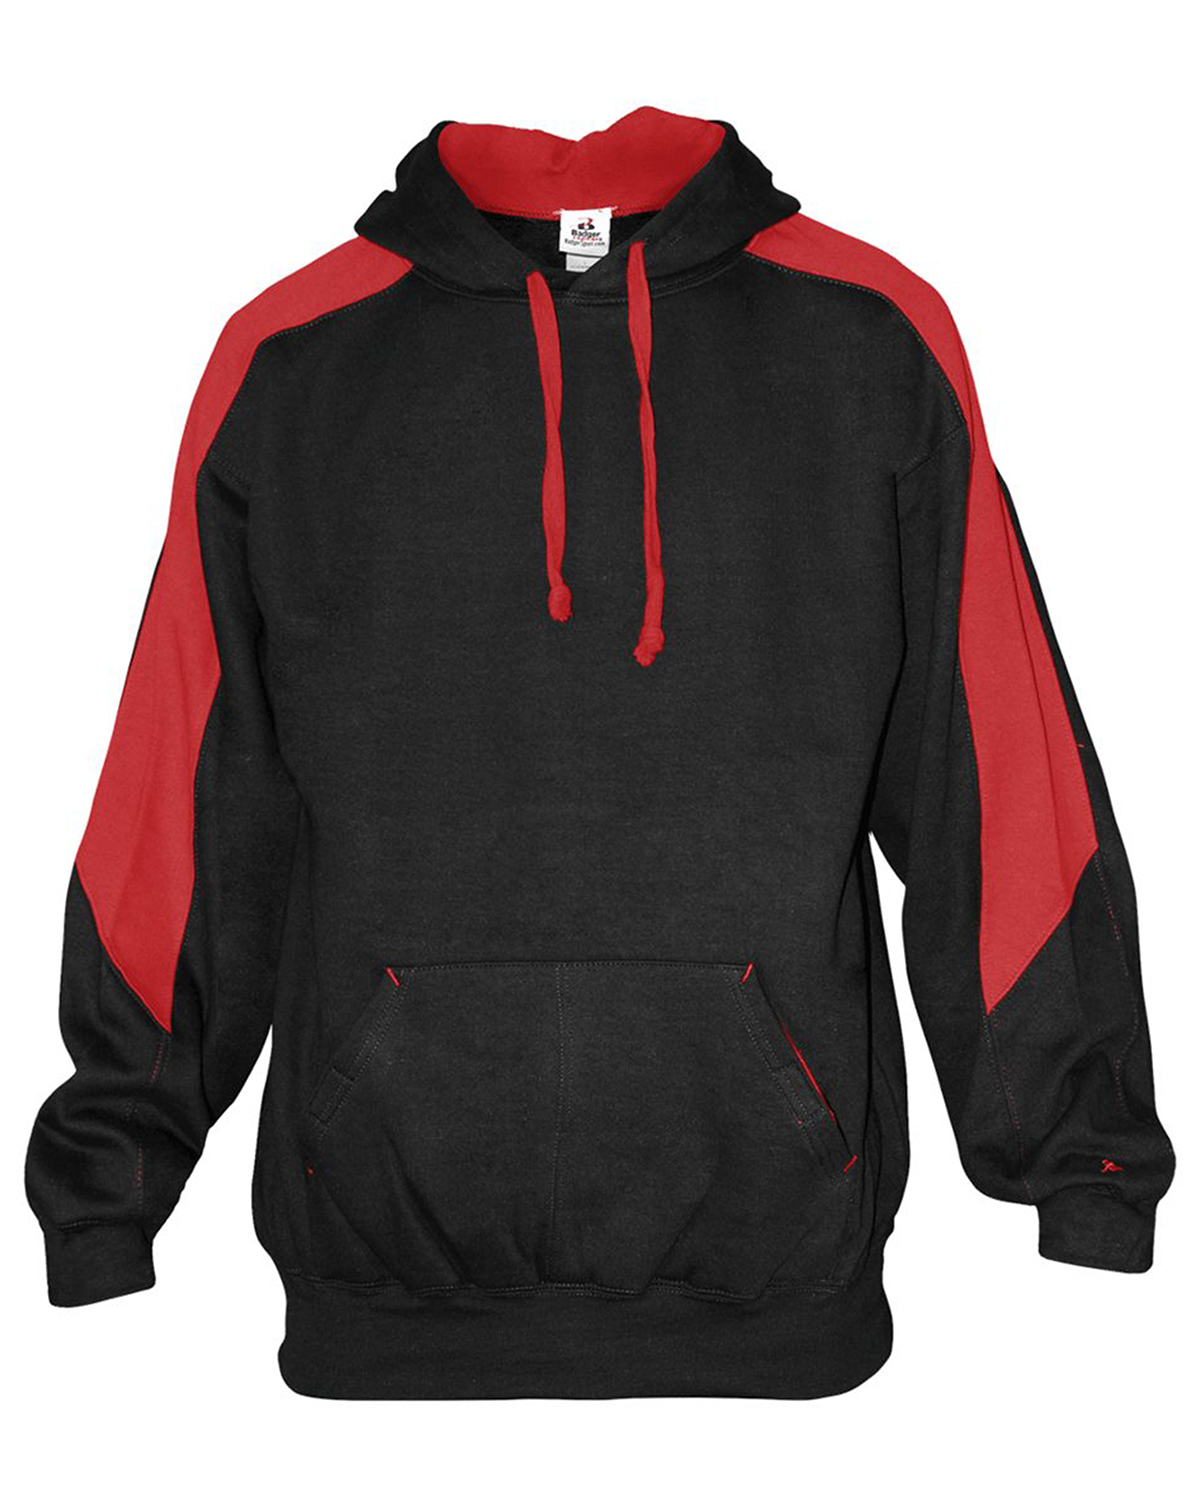 Badger Sport BD1265 - Adult Saber Hooded Fleece